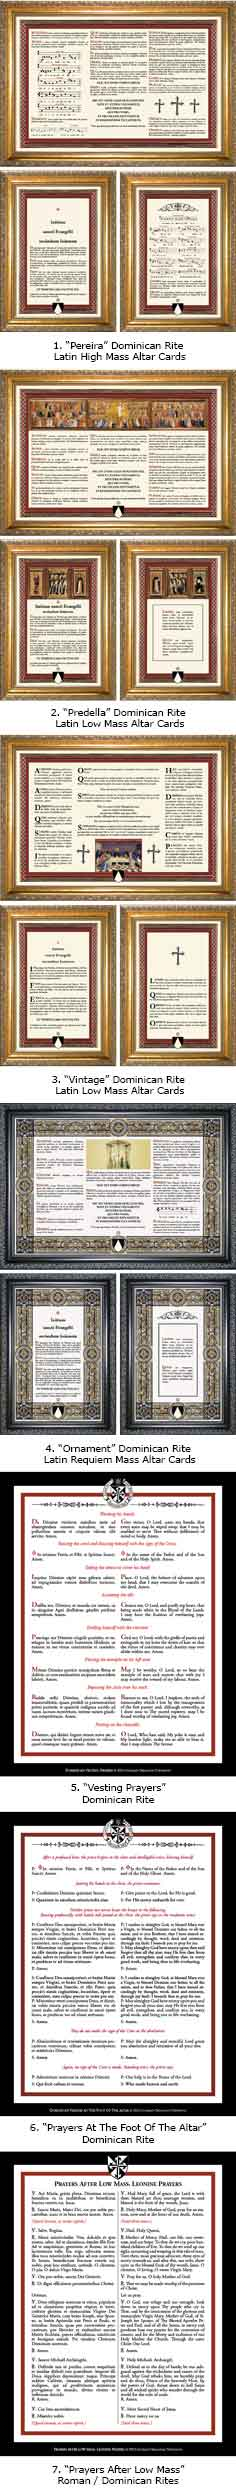 DOMINICAN RITE LATIN MASS CARDS